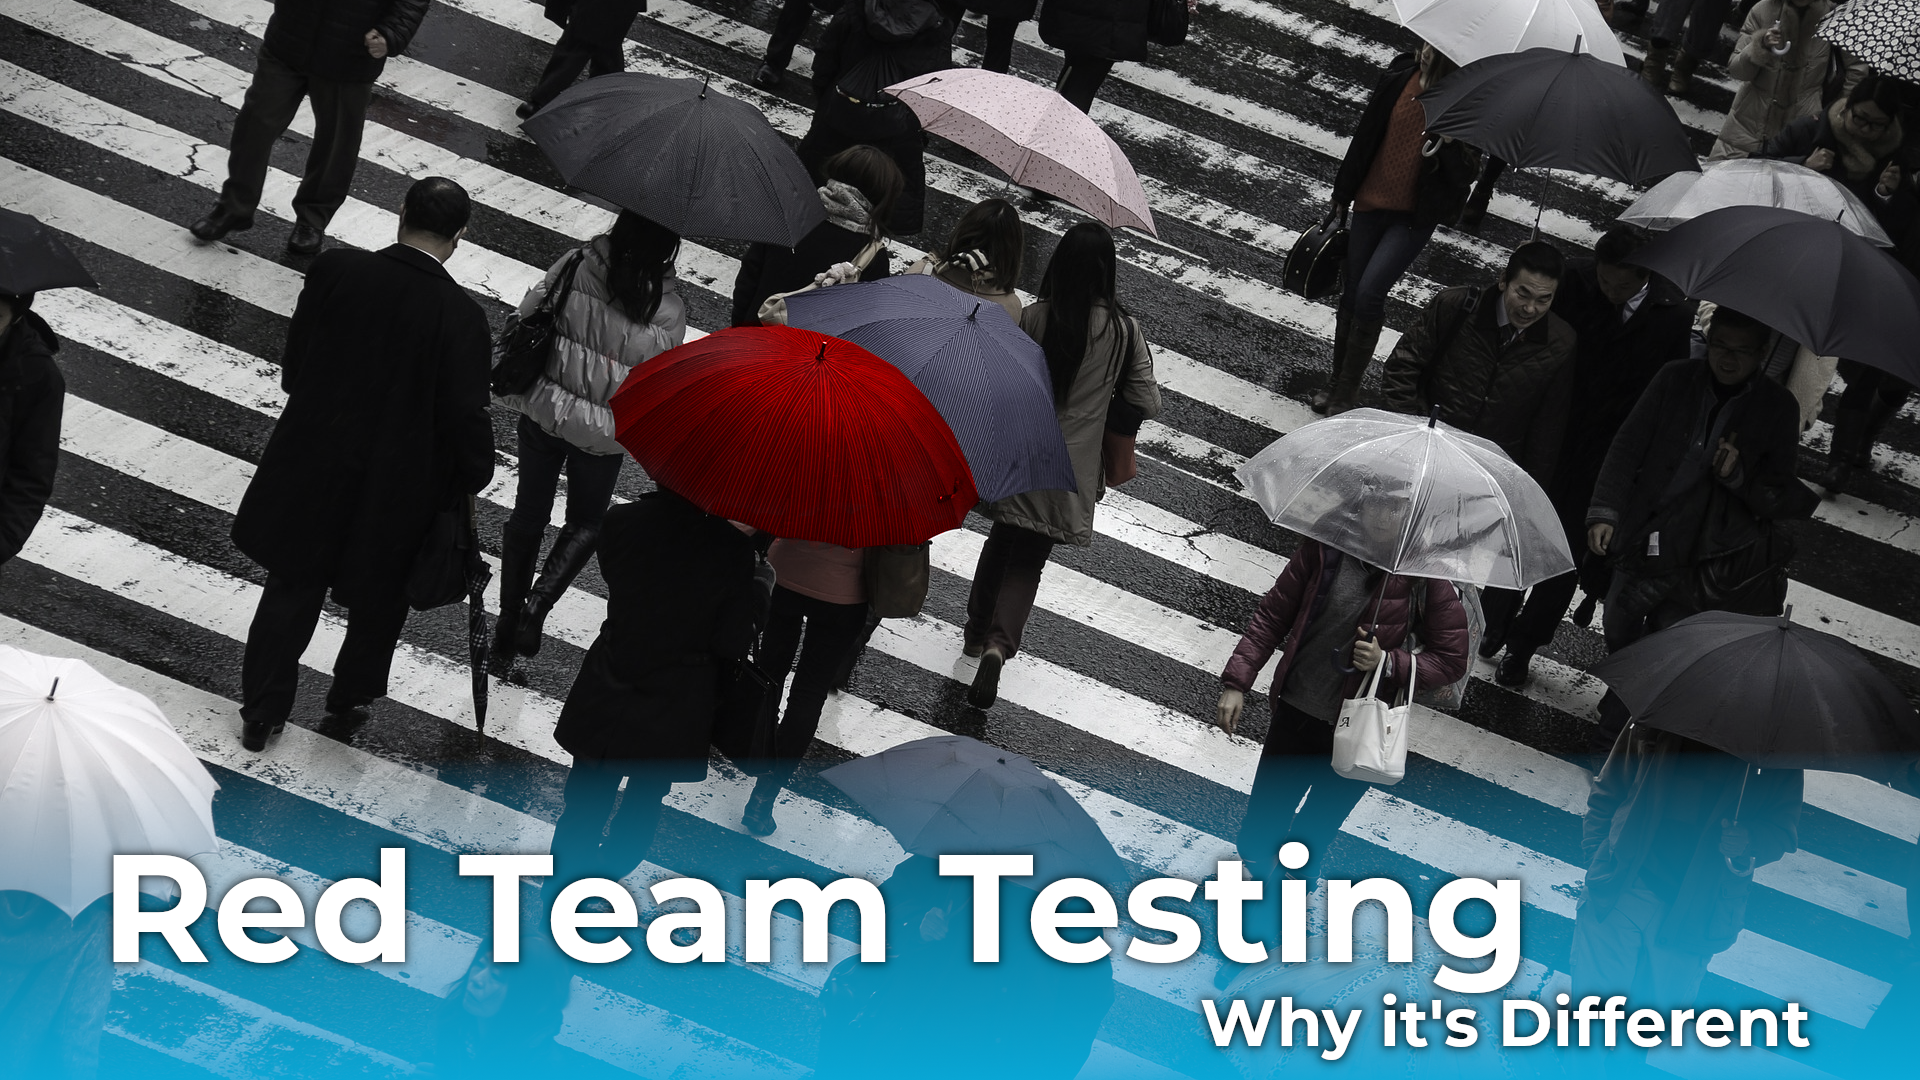 Penetration Testing is not Red Team Testing